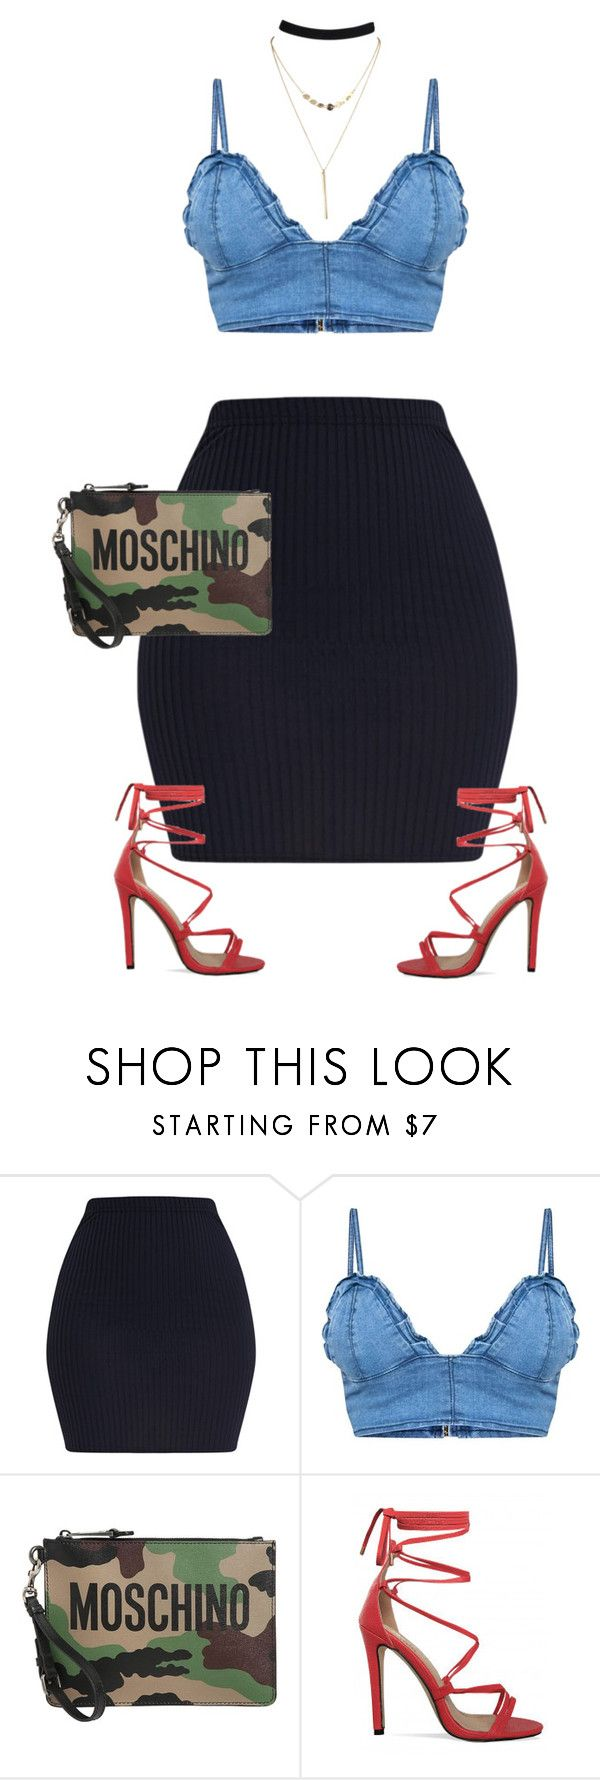 """Untitled #494"" by styleswavington ❤ liked on Polyvore featuring Moschino"